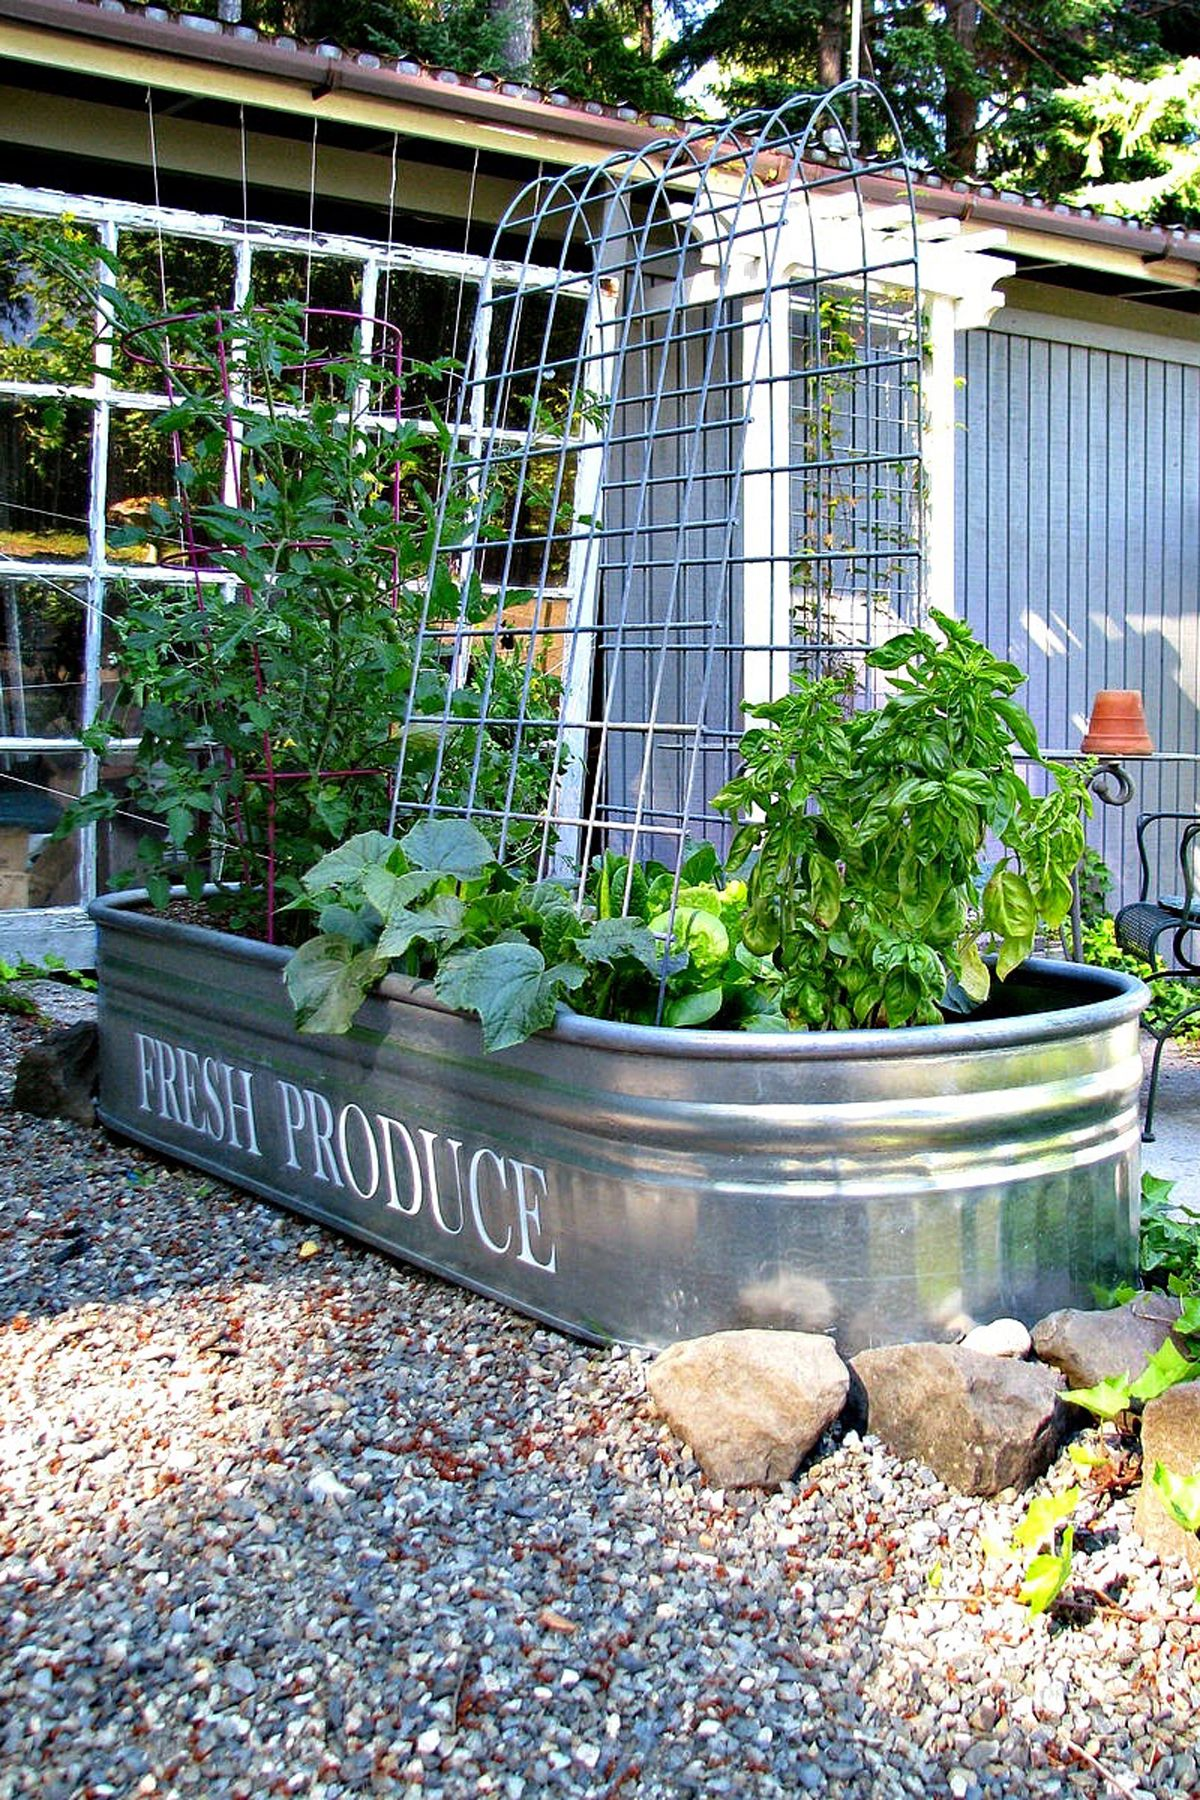 "<p>Does a big sprawling garden sound unmanageable? Keep things contained and compact by using a galvanized feed trough as a raised gardening bed.</p><p><strong data-redactor-tag=""strong"" data-verified=""redactor"">Get the tutorial at <a href=""http://www.blueroofcabin.com/2014/06/a-managable-veggie-garden.html"" target=""_blank"" data-tracking-id=""recirc-text-link"">Blue Roof Cabin</a><span class=""redactor-invisible-space"" data-verified=""redactor"" data-redactor-tag=""span"" data-redactor-class=""redactor-invisible-space"">.</span></strong></p>"